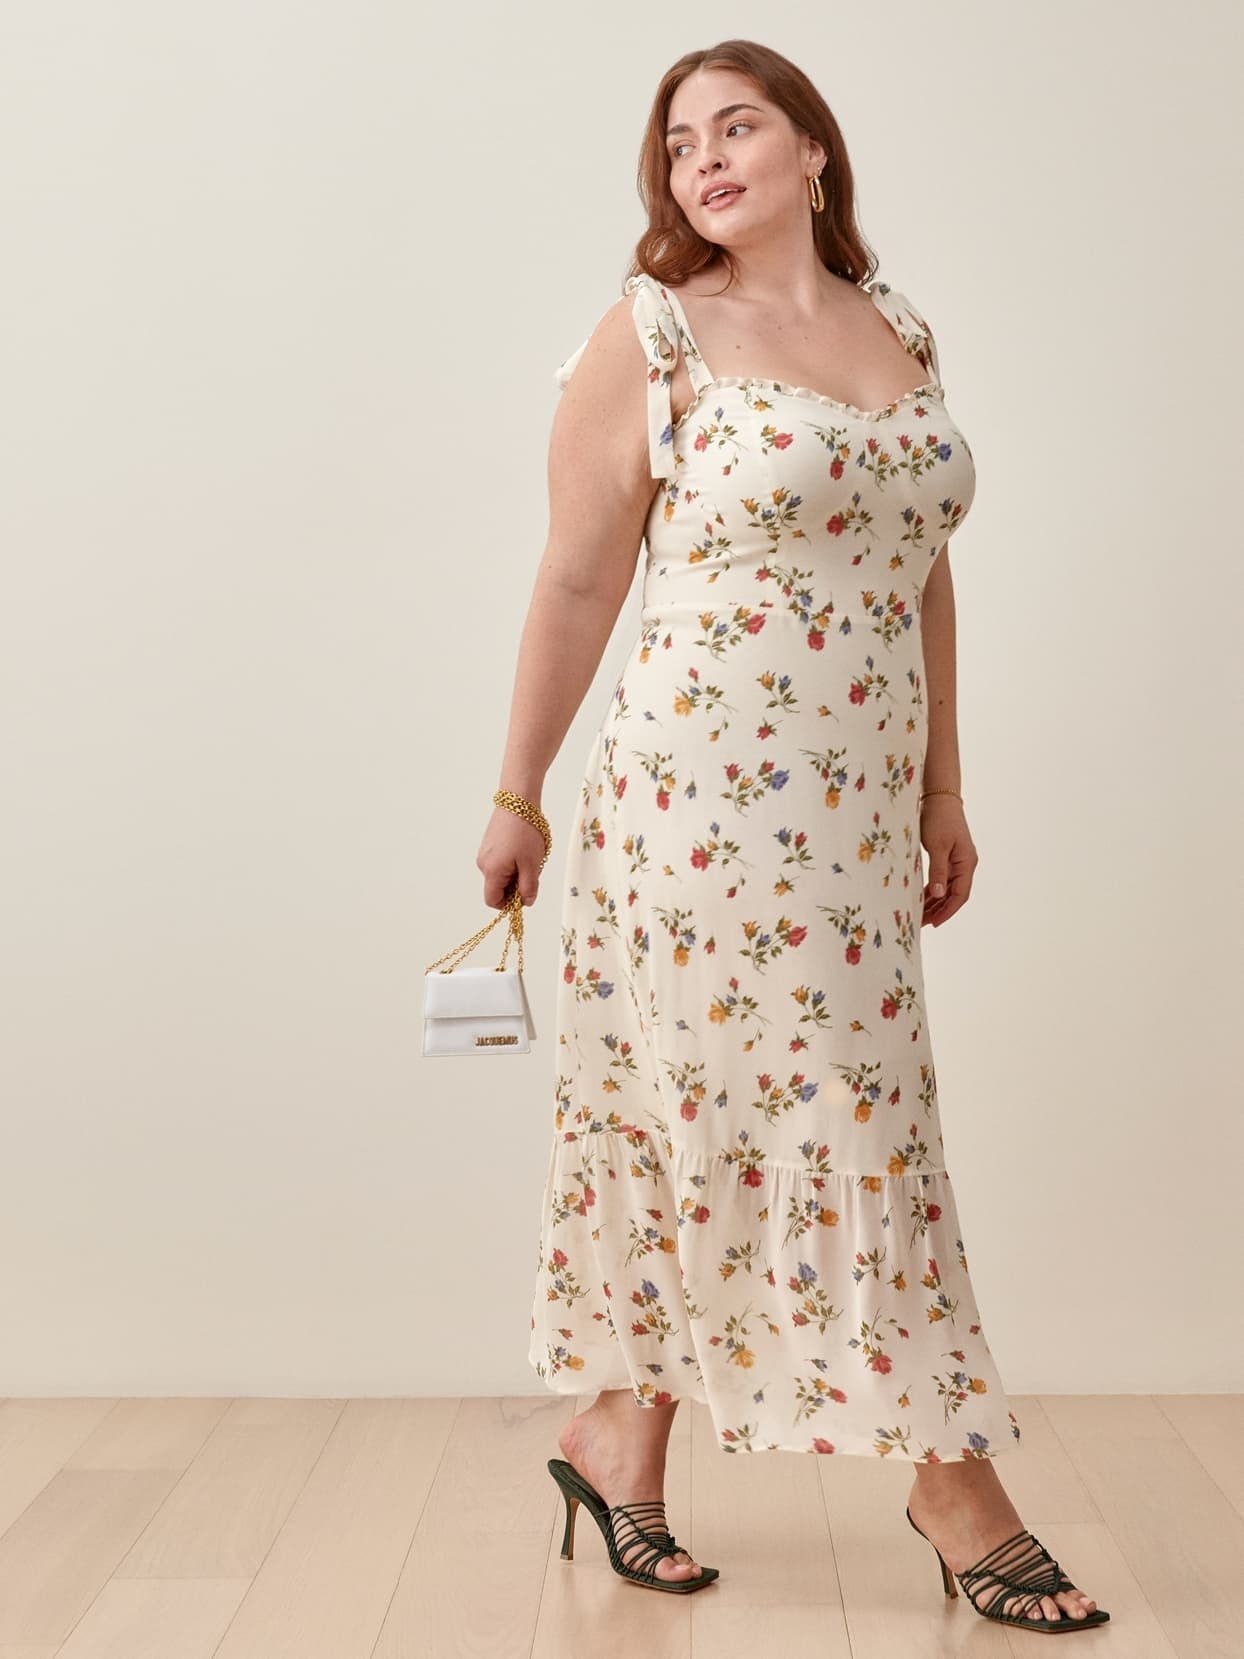 Model wearing the cream and floral print dress